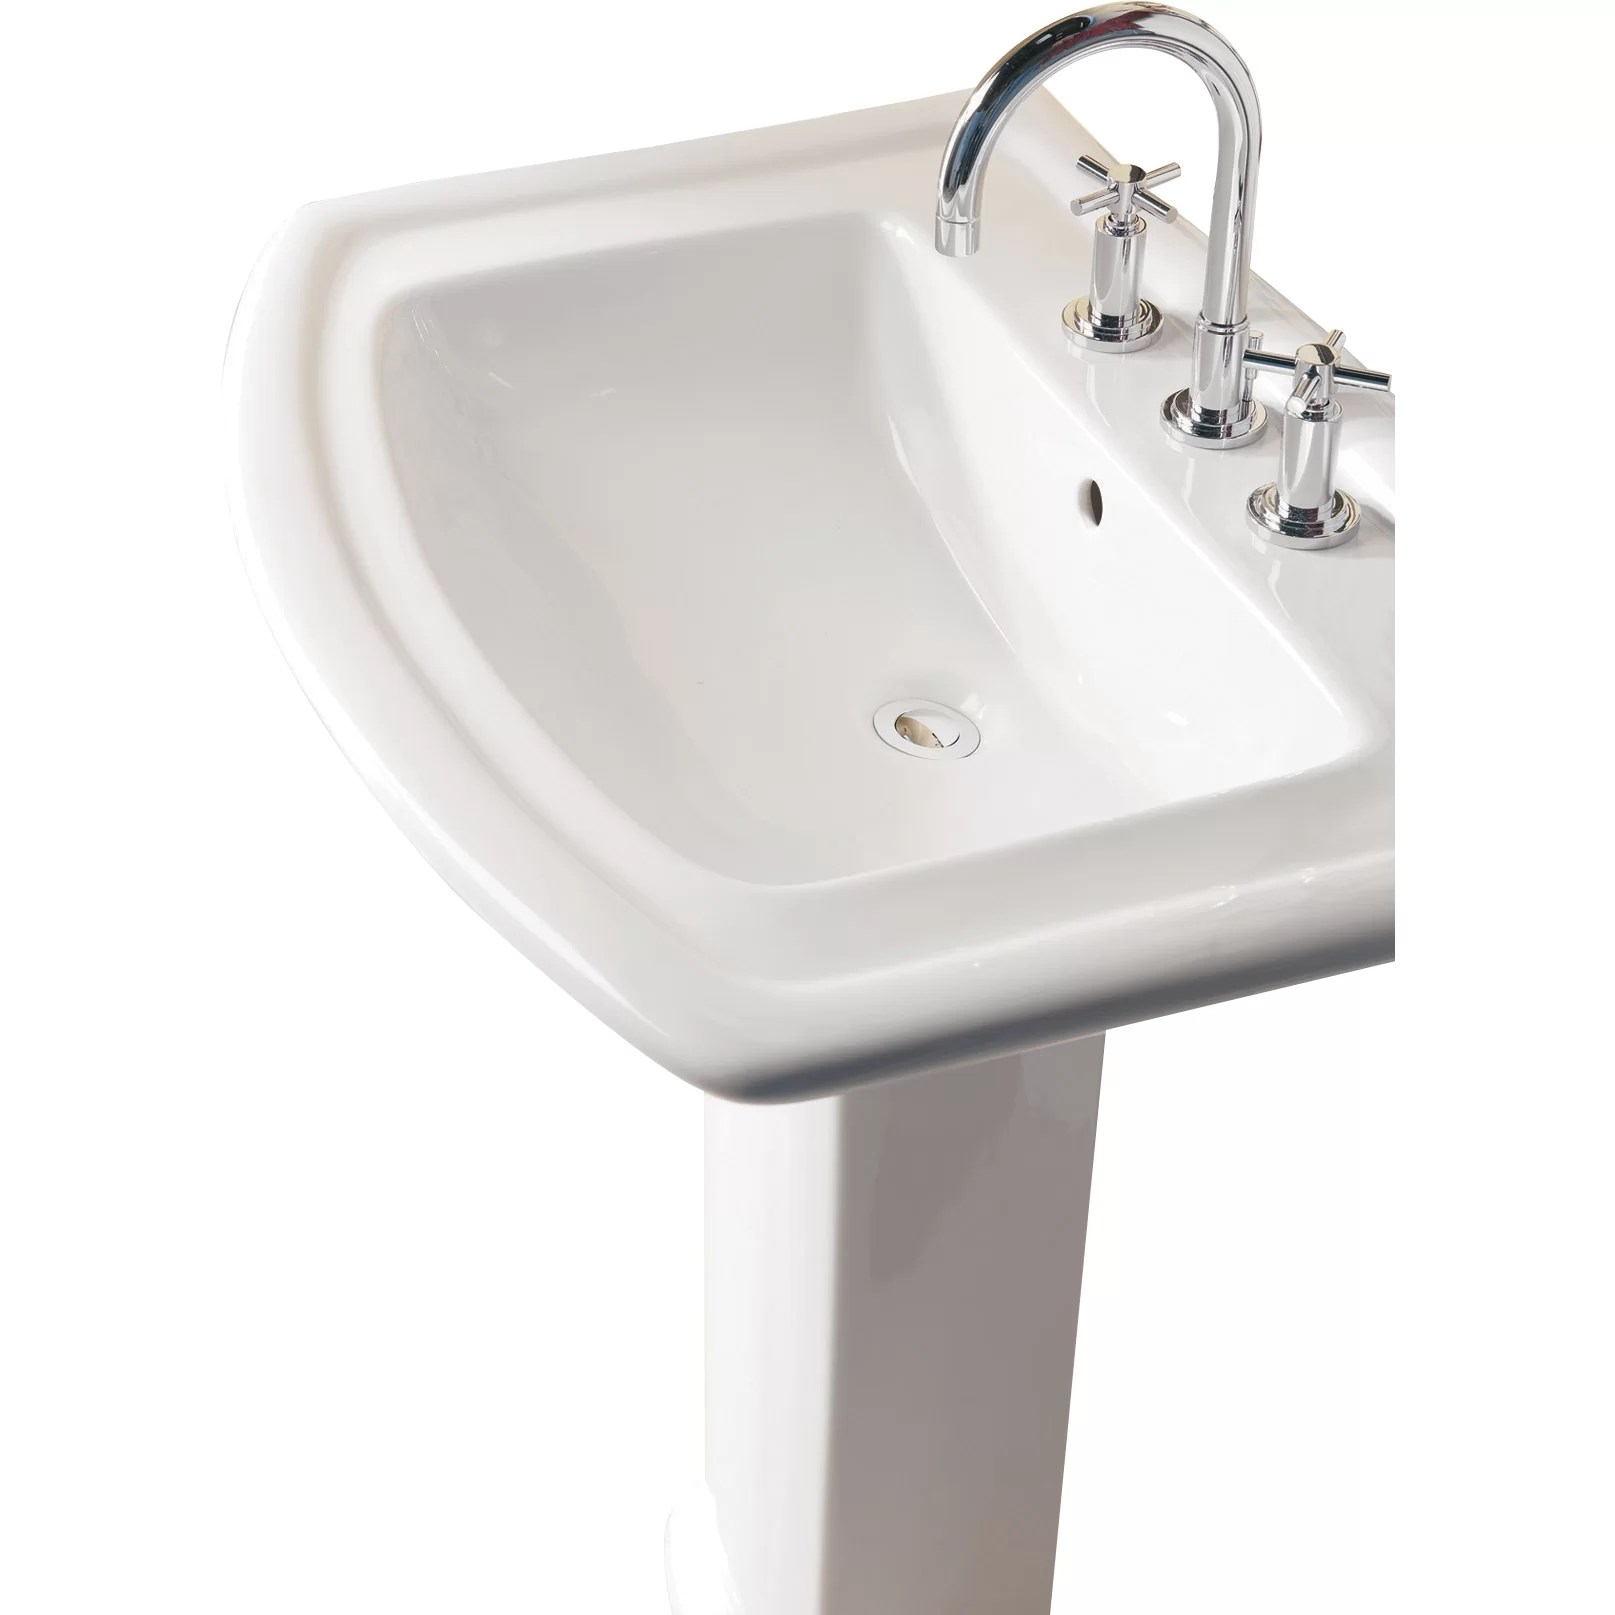 Industrial Pedestal Sink Barclay Washington 550 Pedestal Bathroom Sink And Reviews